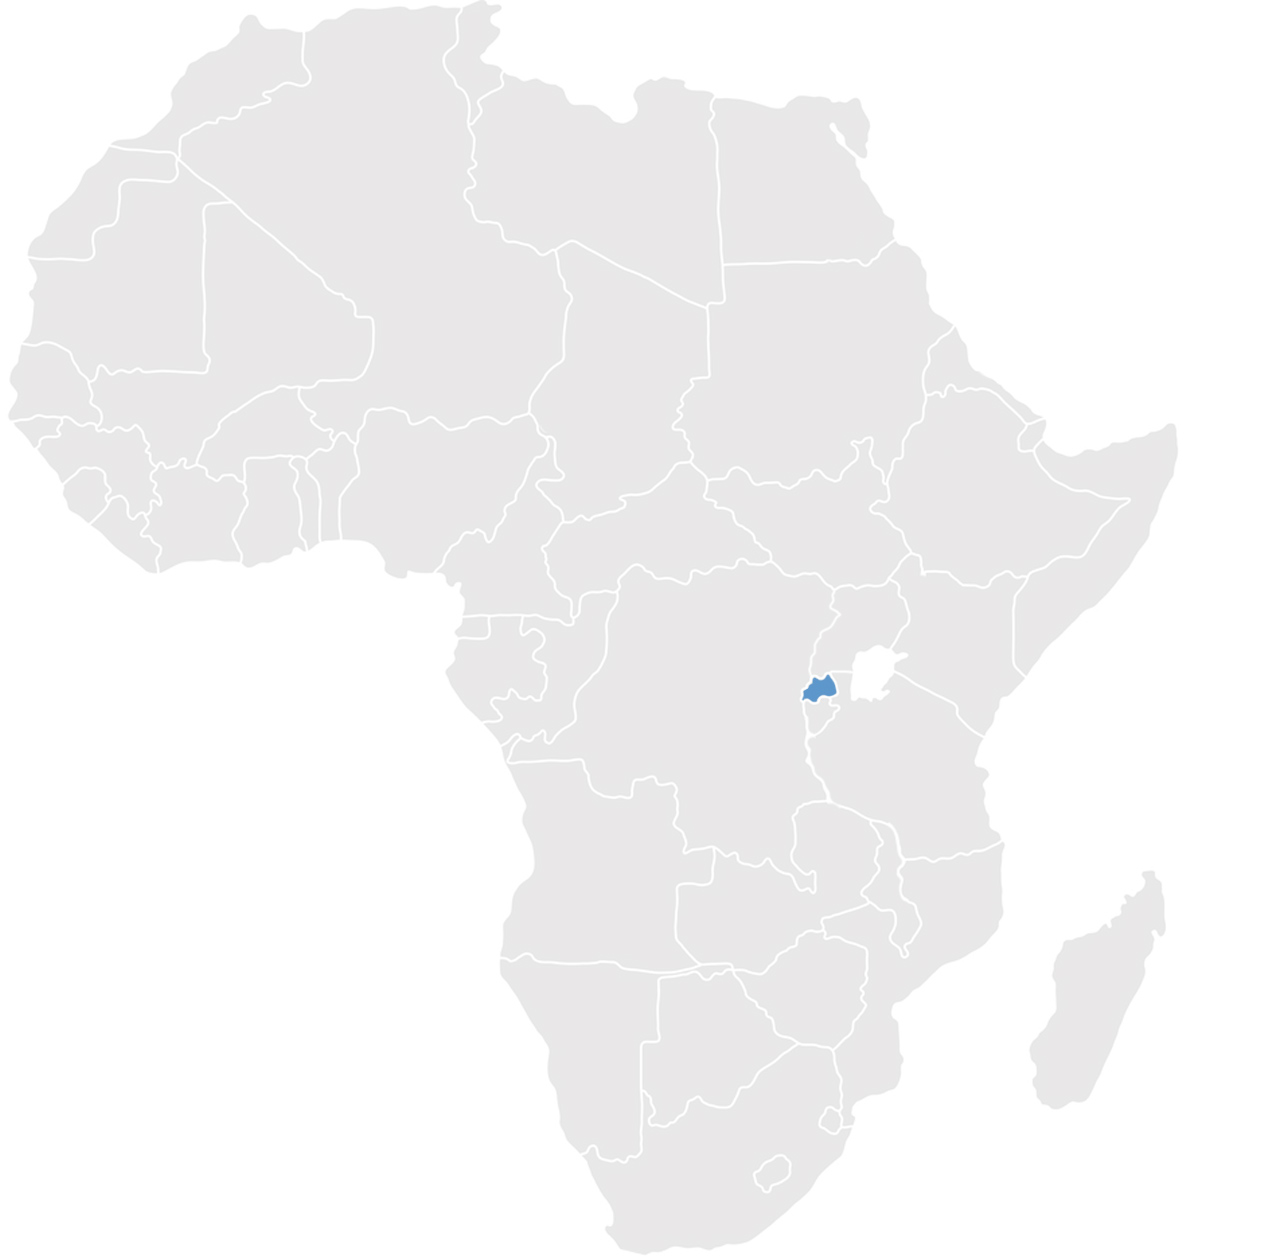 Gray map of Africa with Rwanda in blue